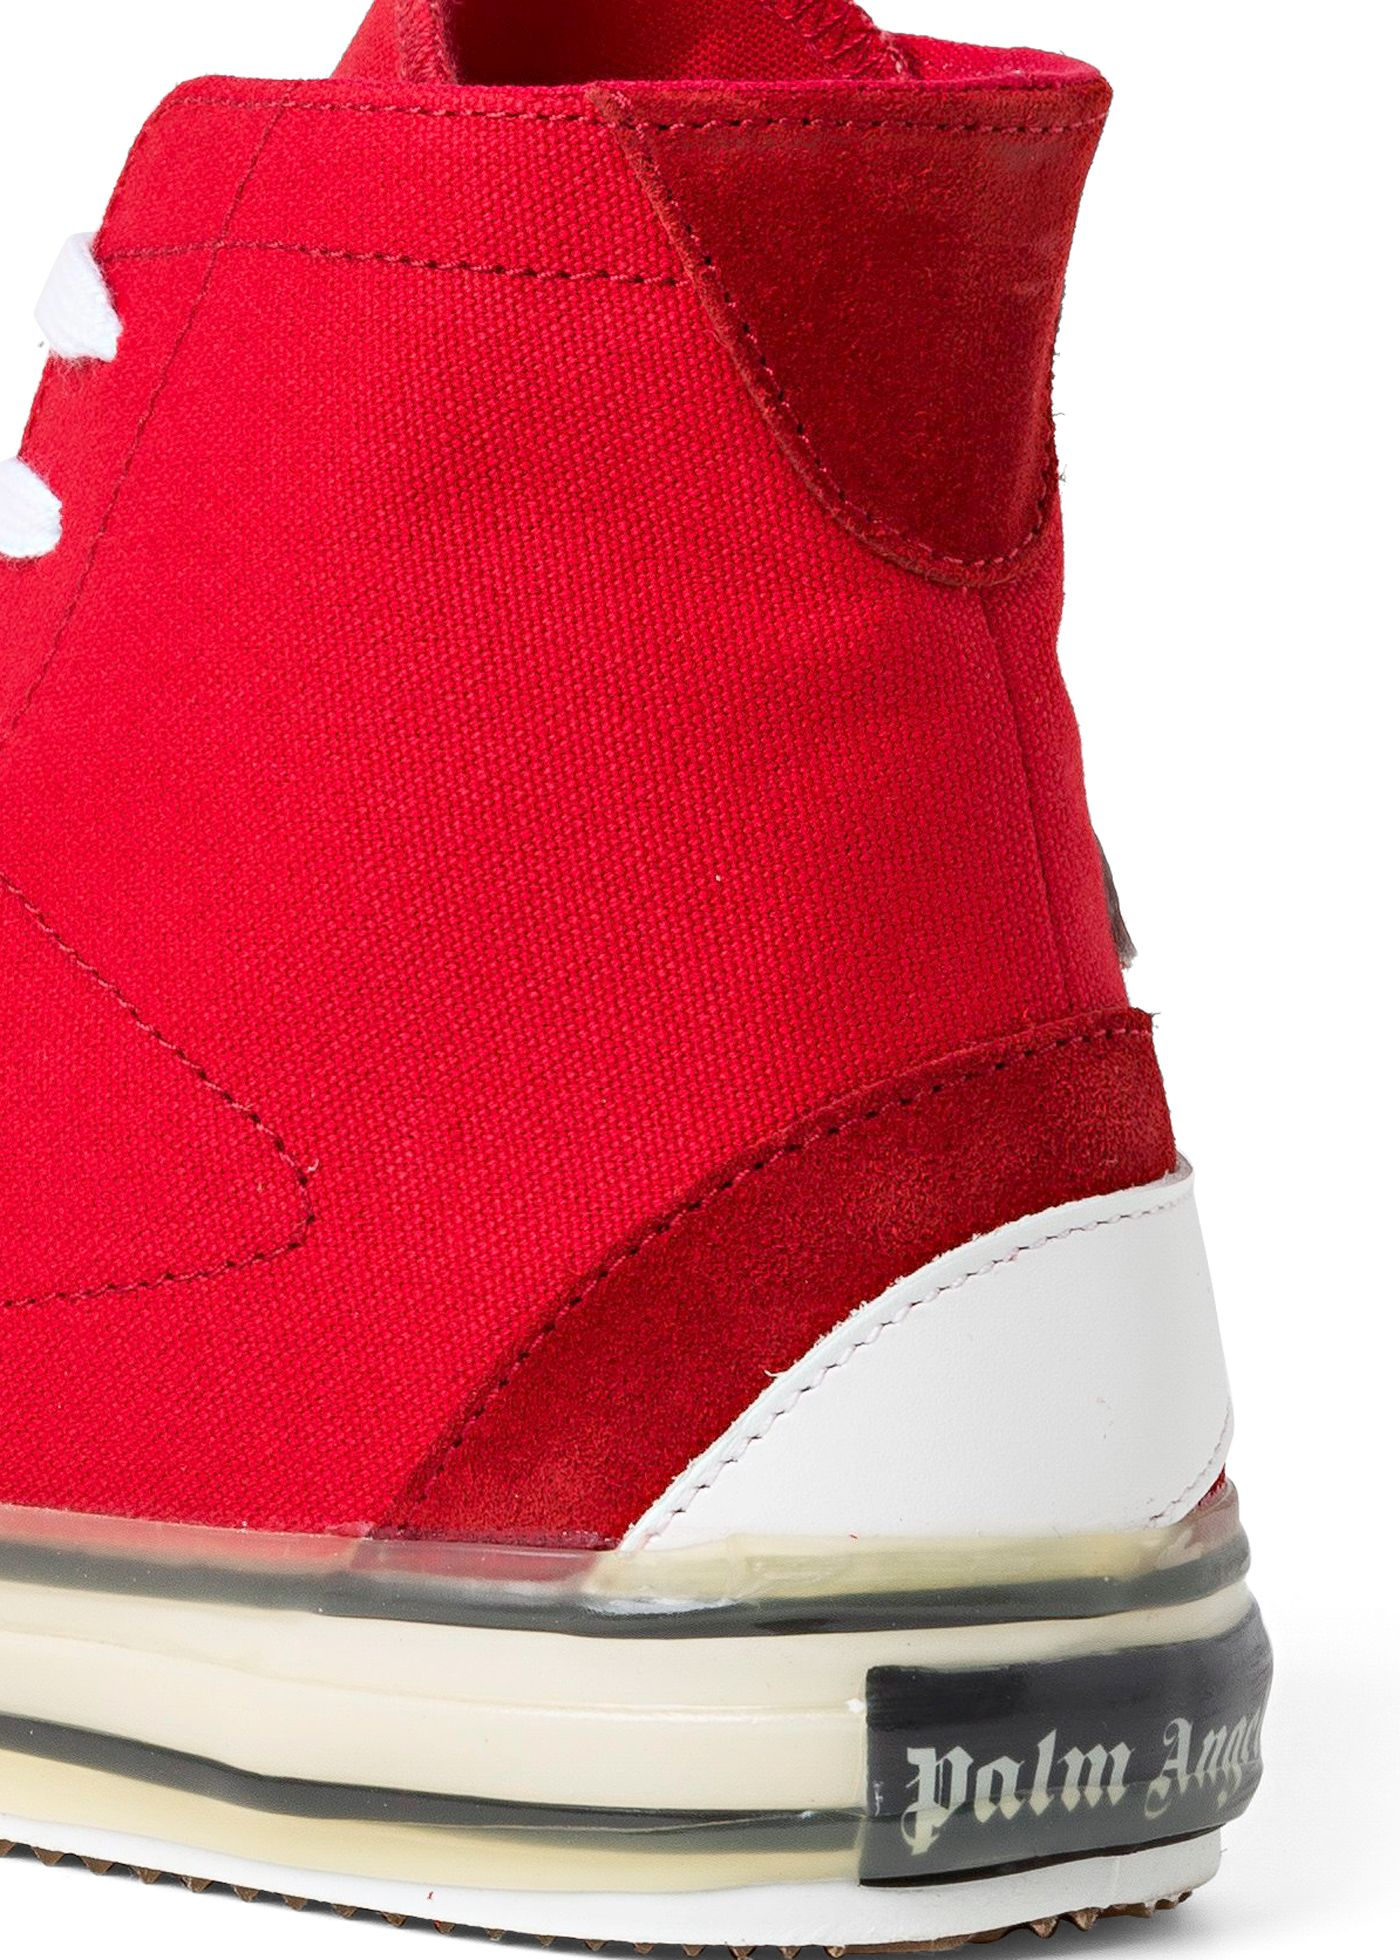 VULC PALM HIGH TOP CANVAS image number 3